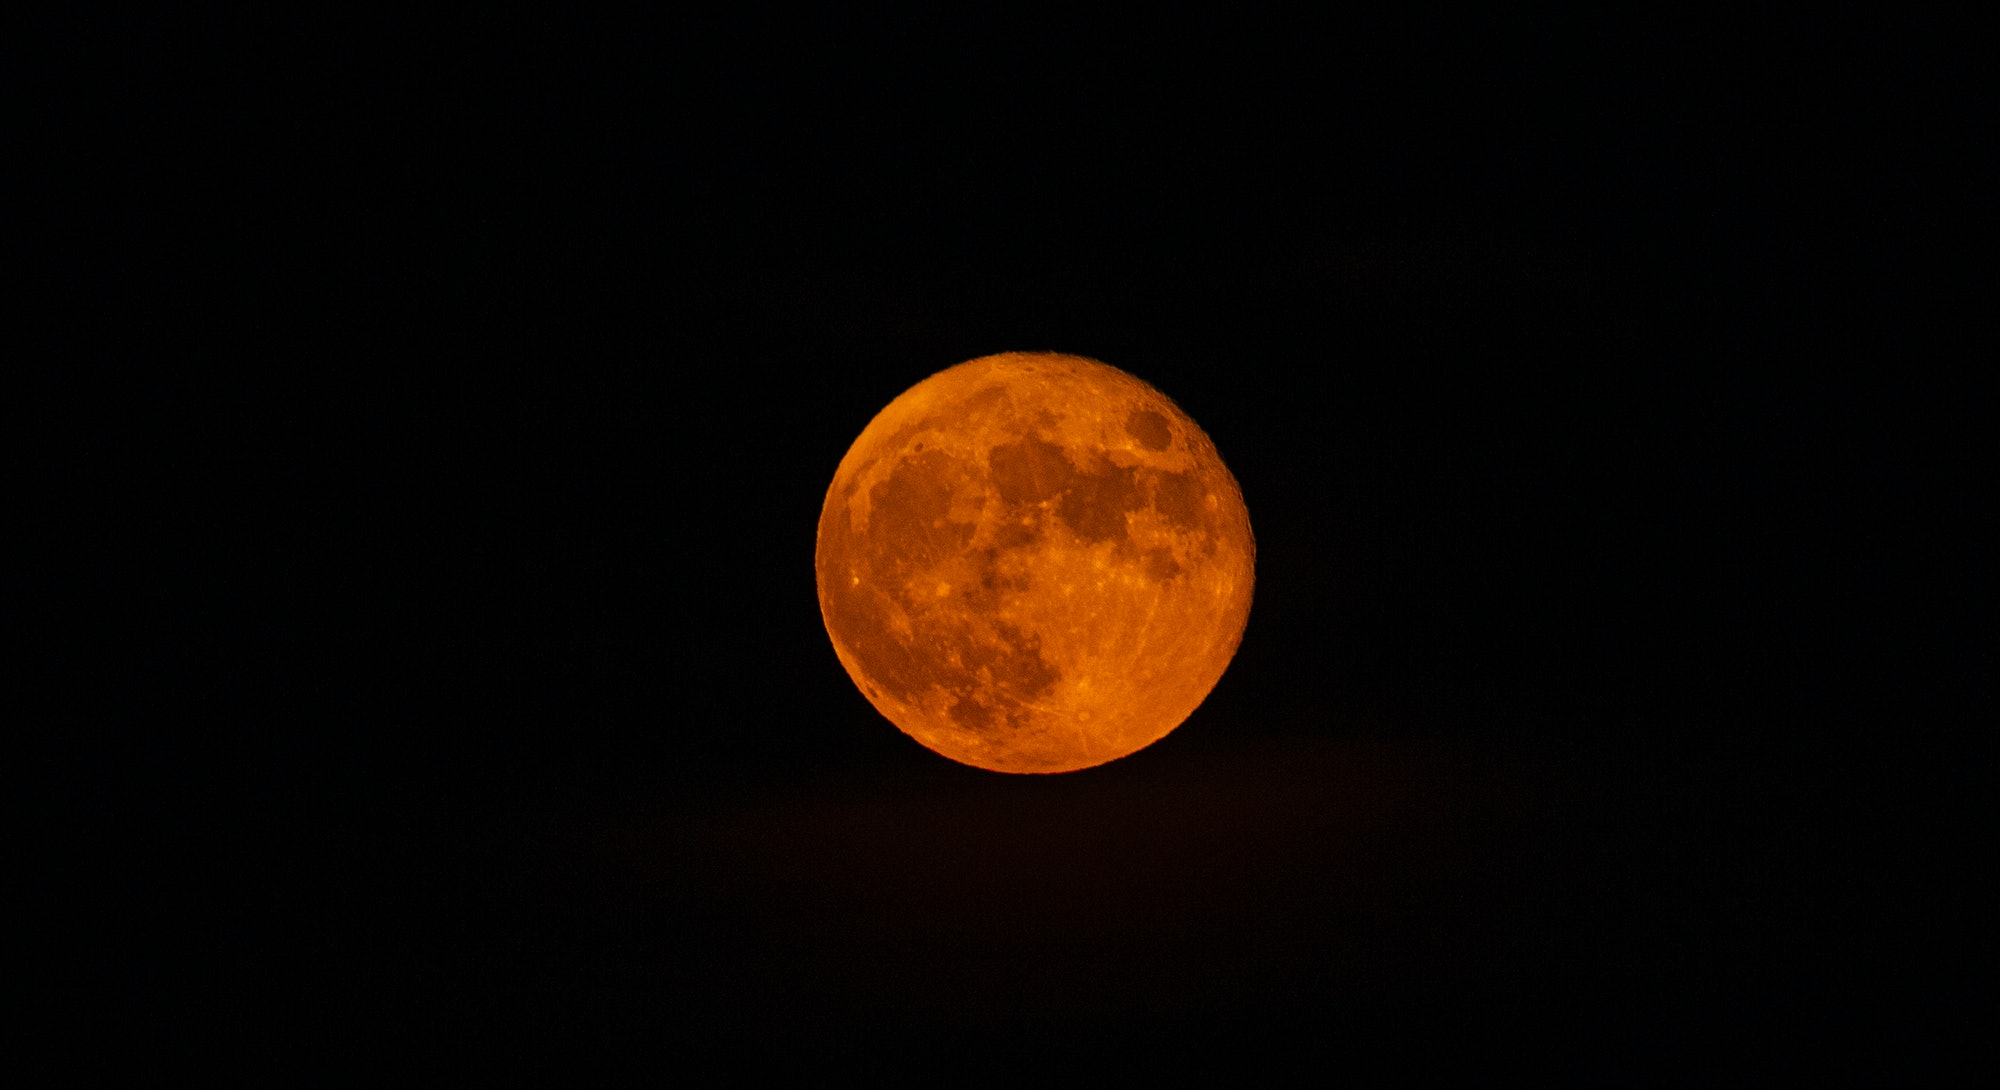 The July 2021 full moon on July 23 is the first full moon of the summer.